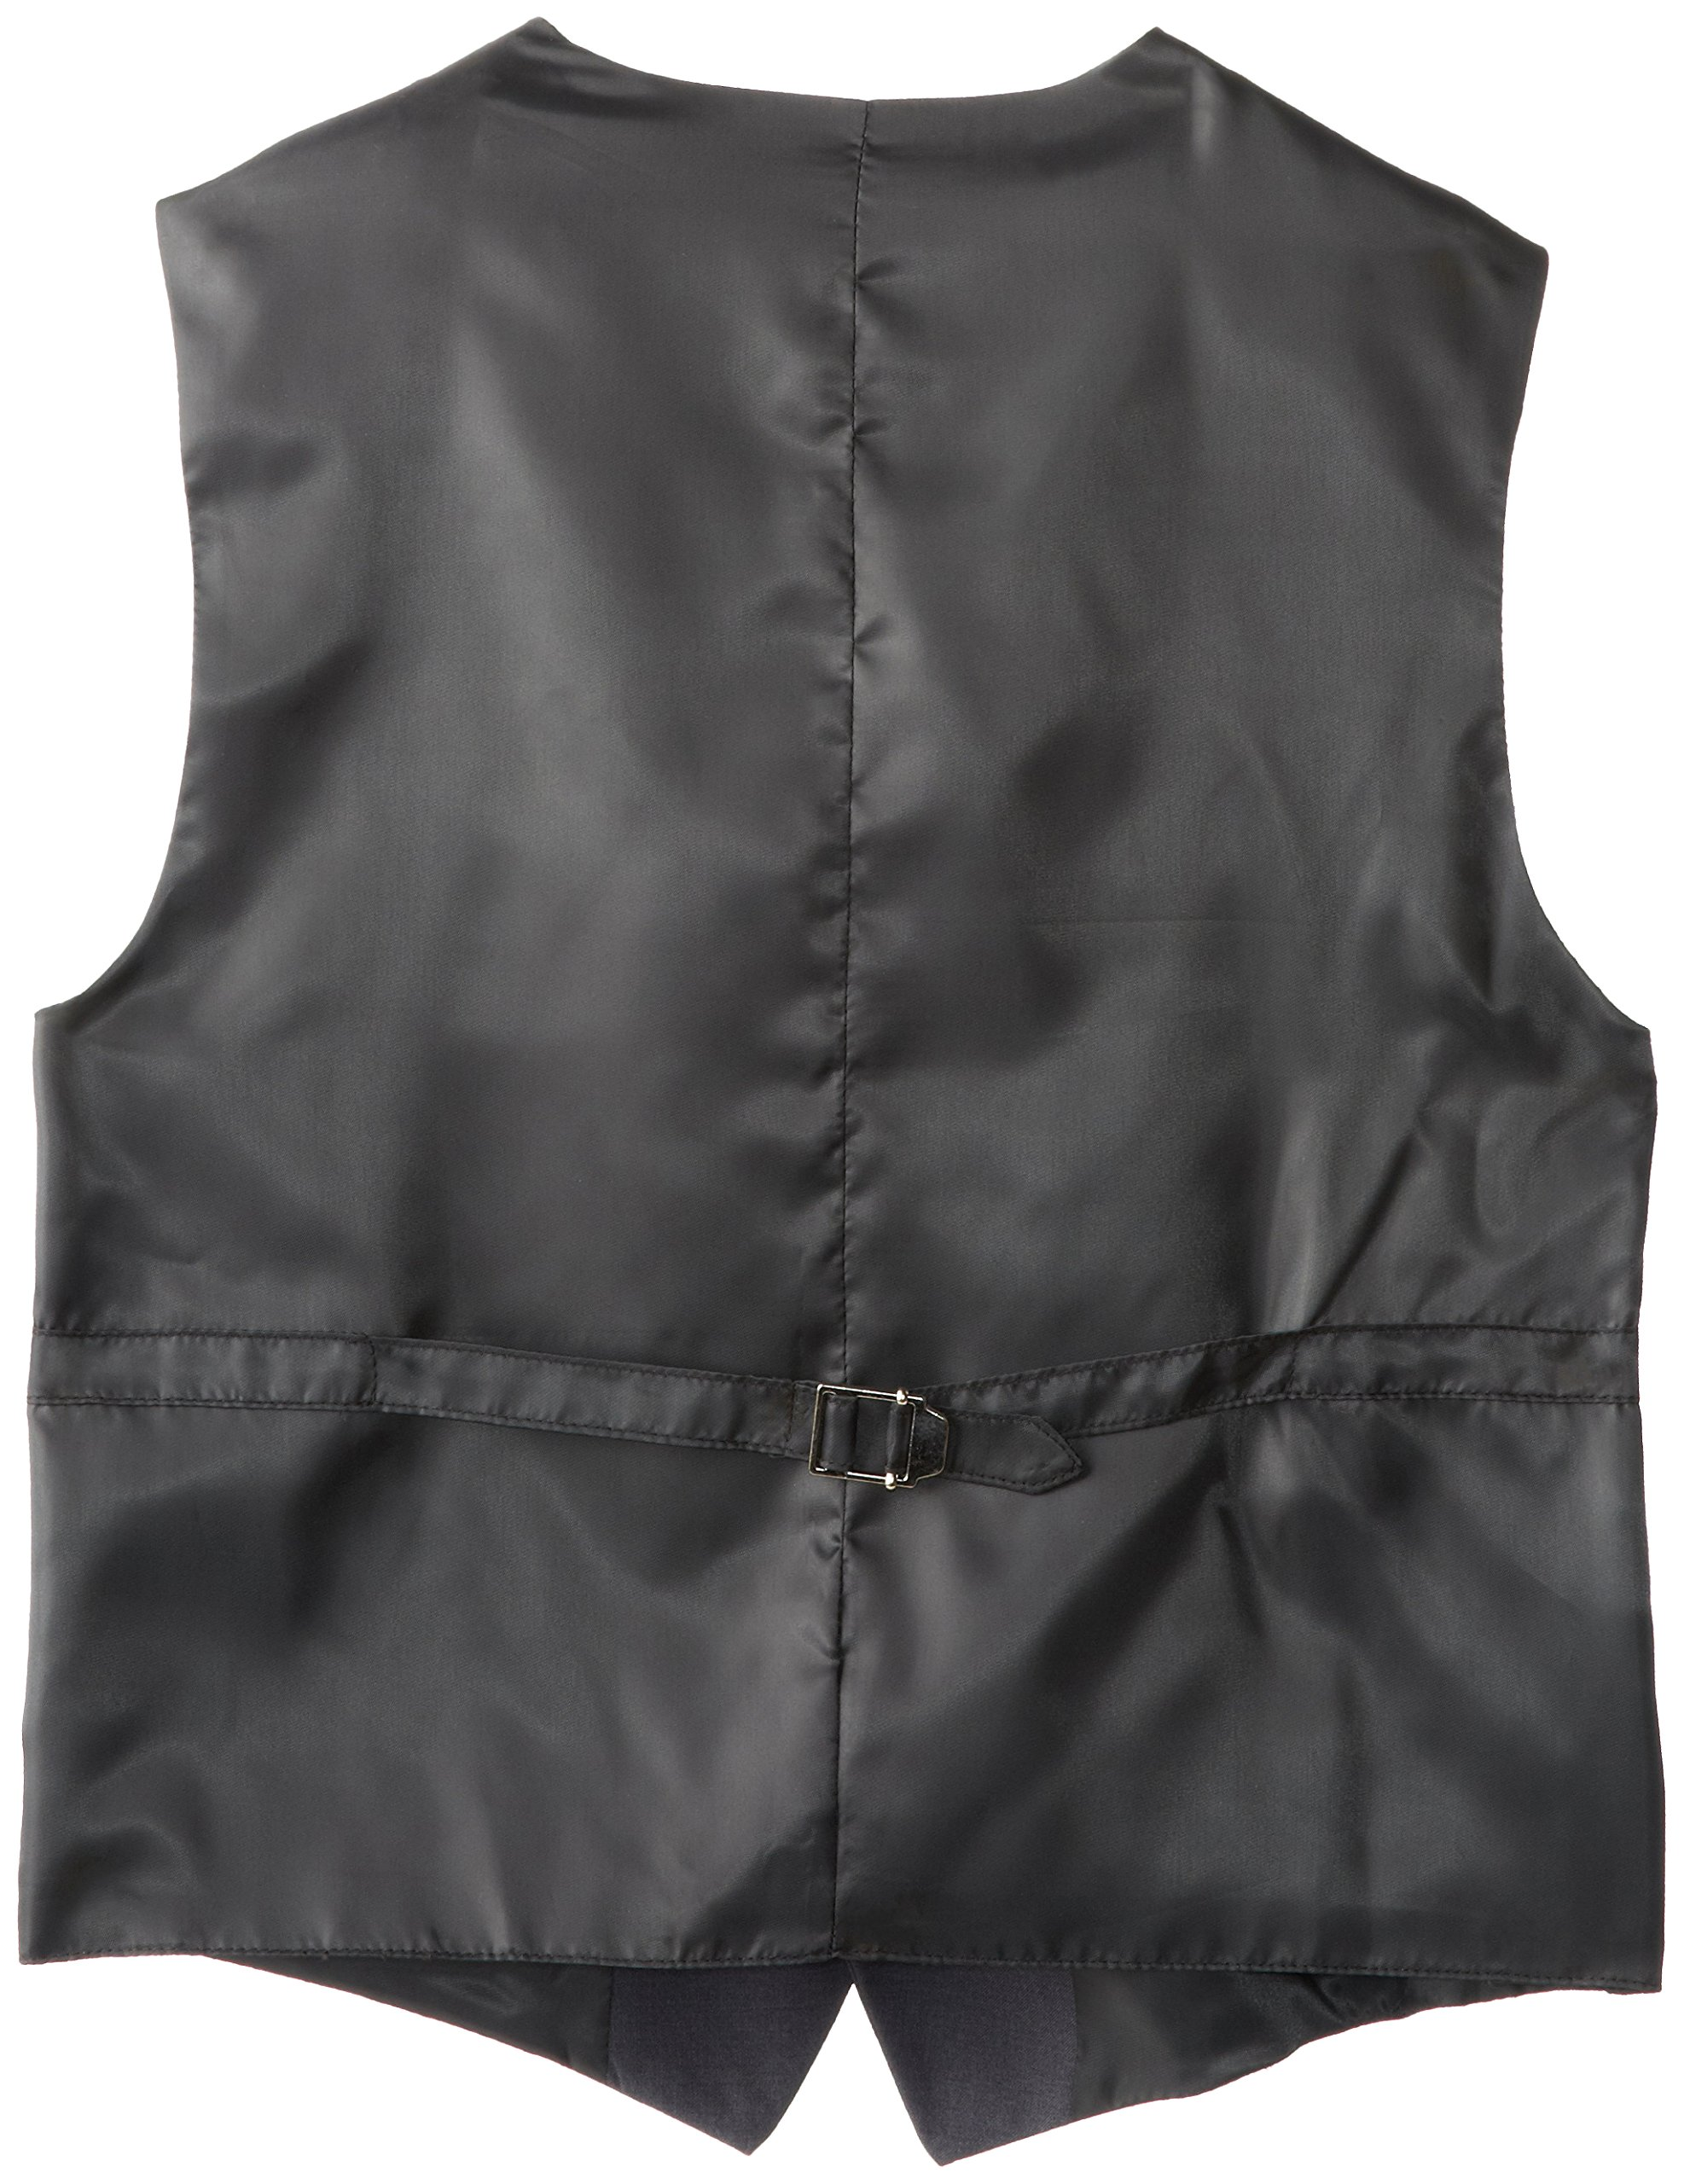 Calvin Klein Big Boys' Fine Line Twill Vest, Dark Charcoal Heather, Large by Calvin Klein (Image #2)